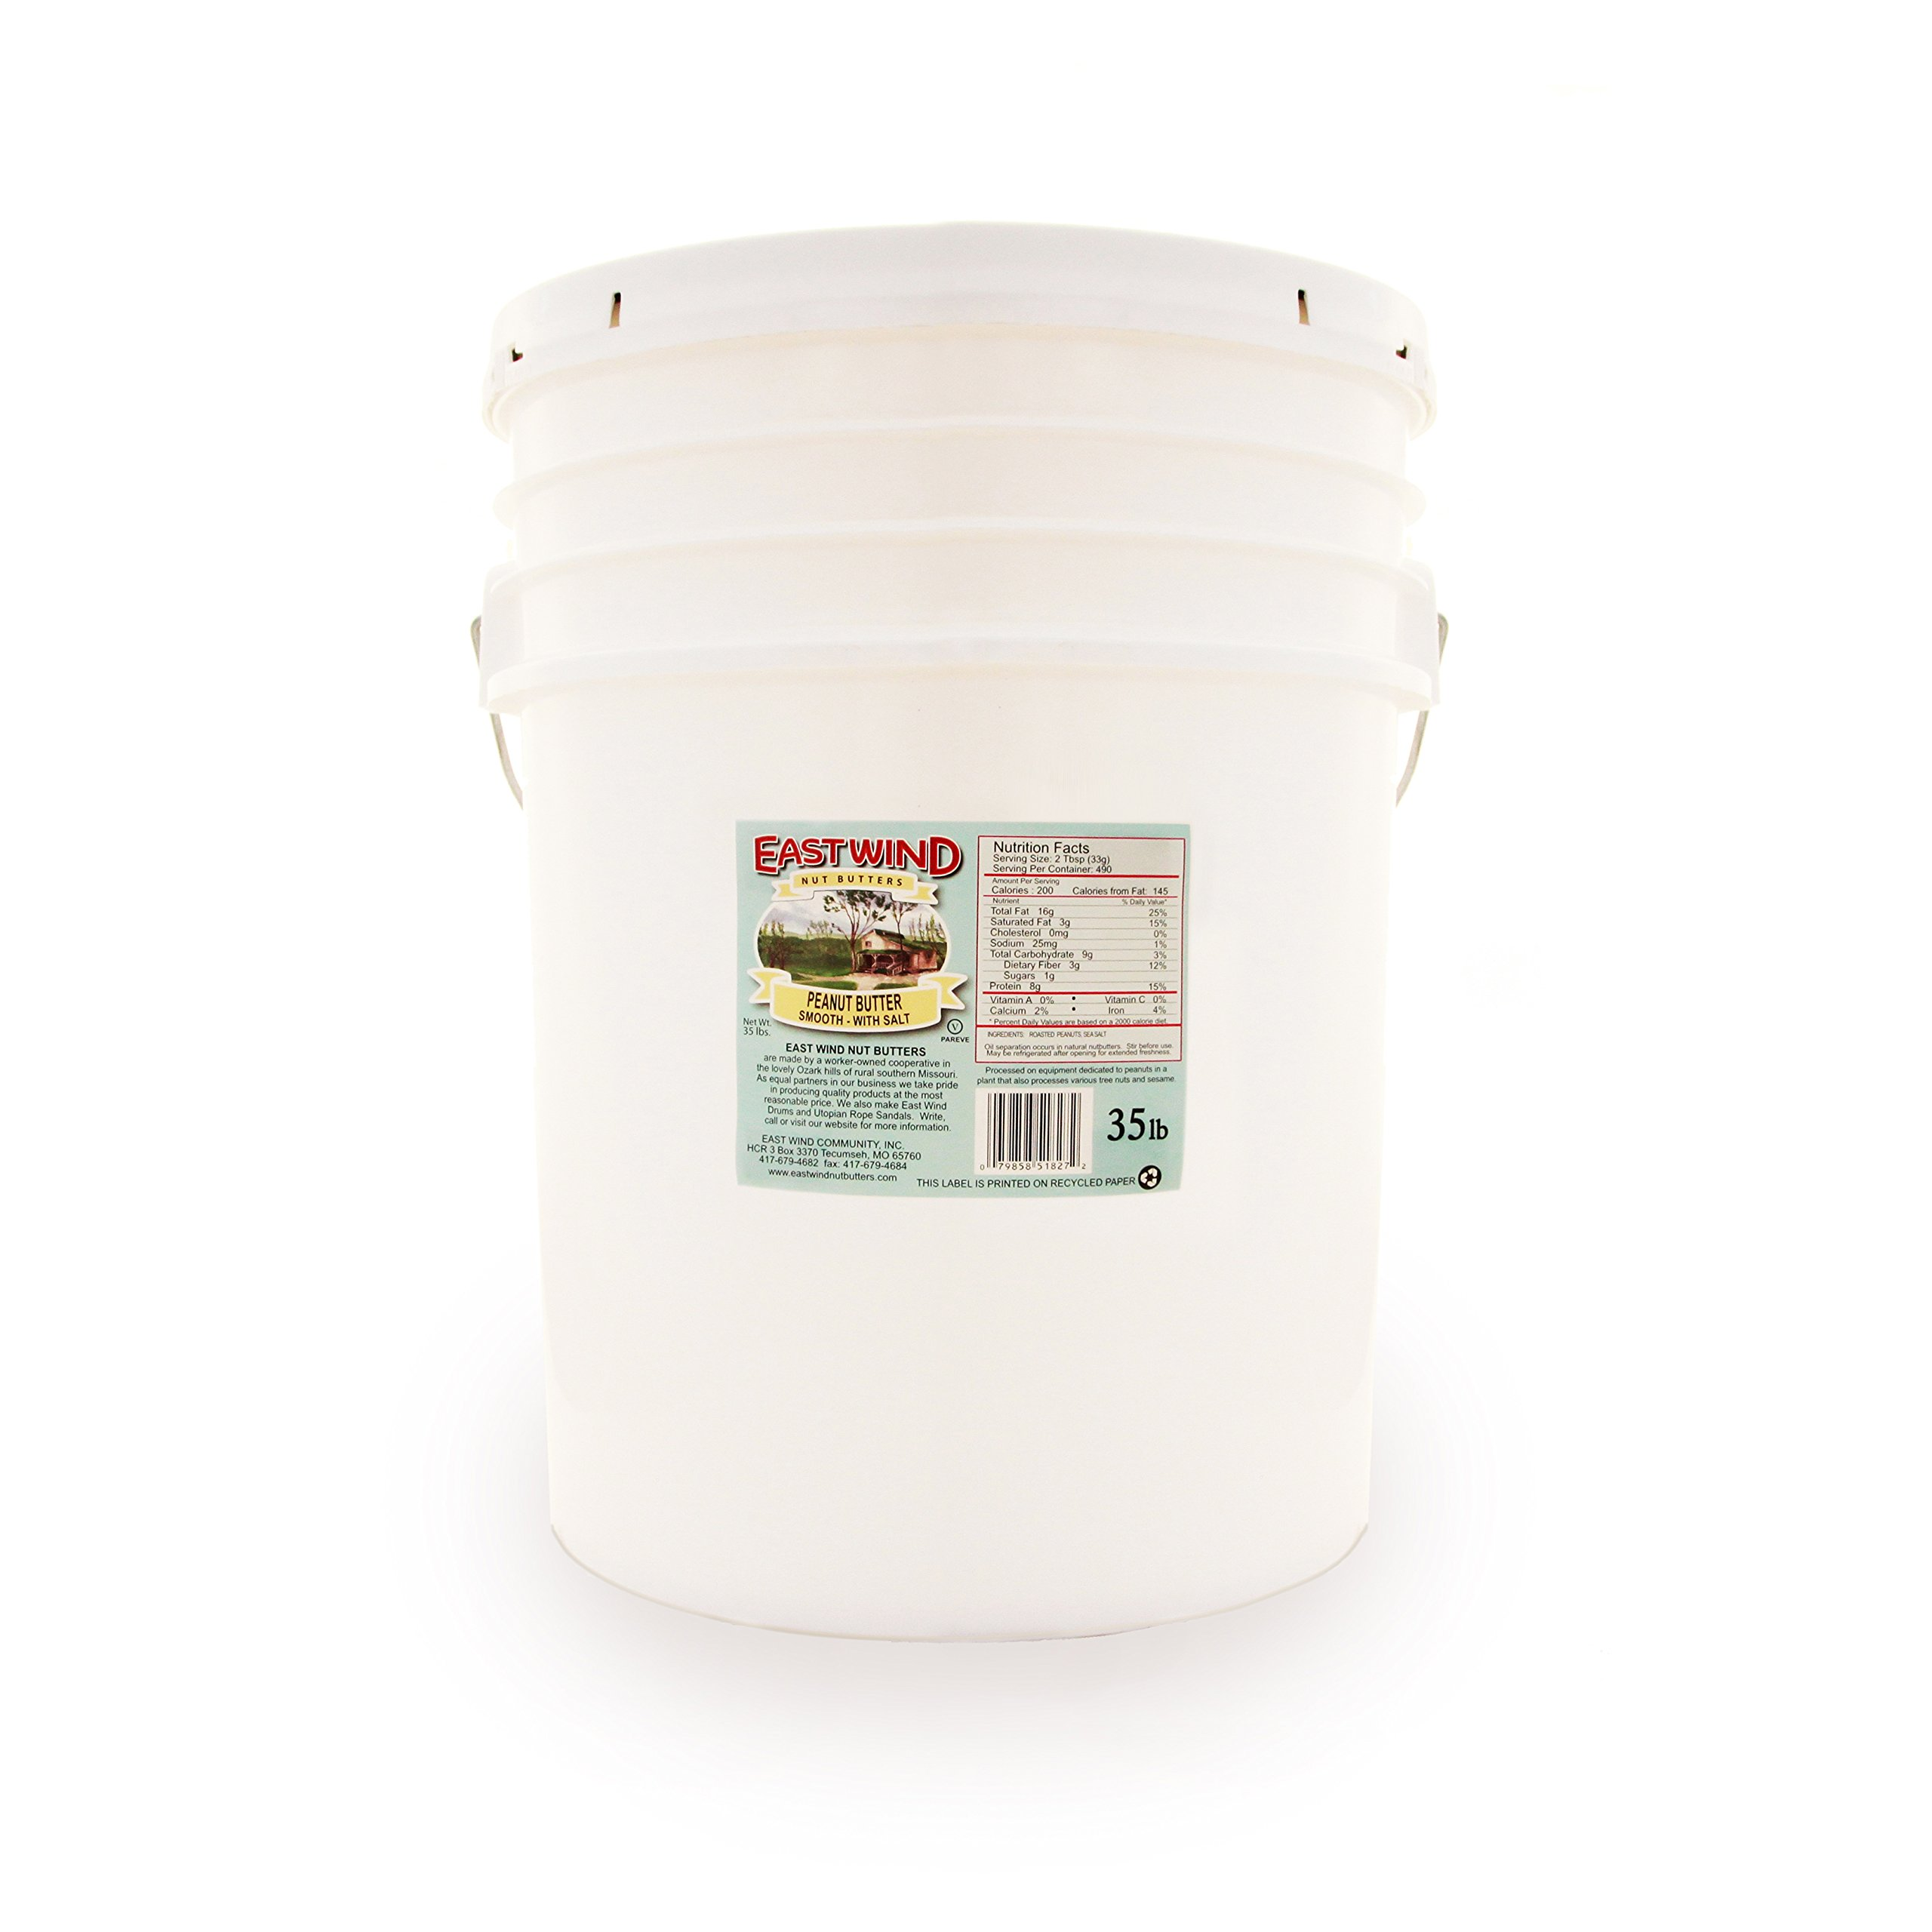 East Wind Smooth Natural Peanut Butter w/ Sea Salt 35lb. Tub